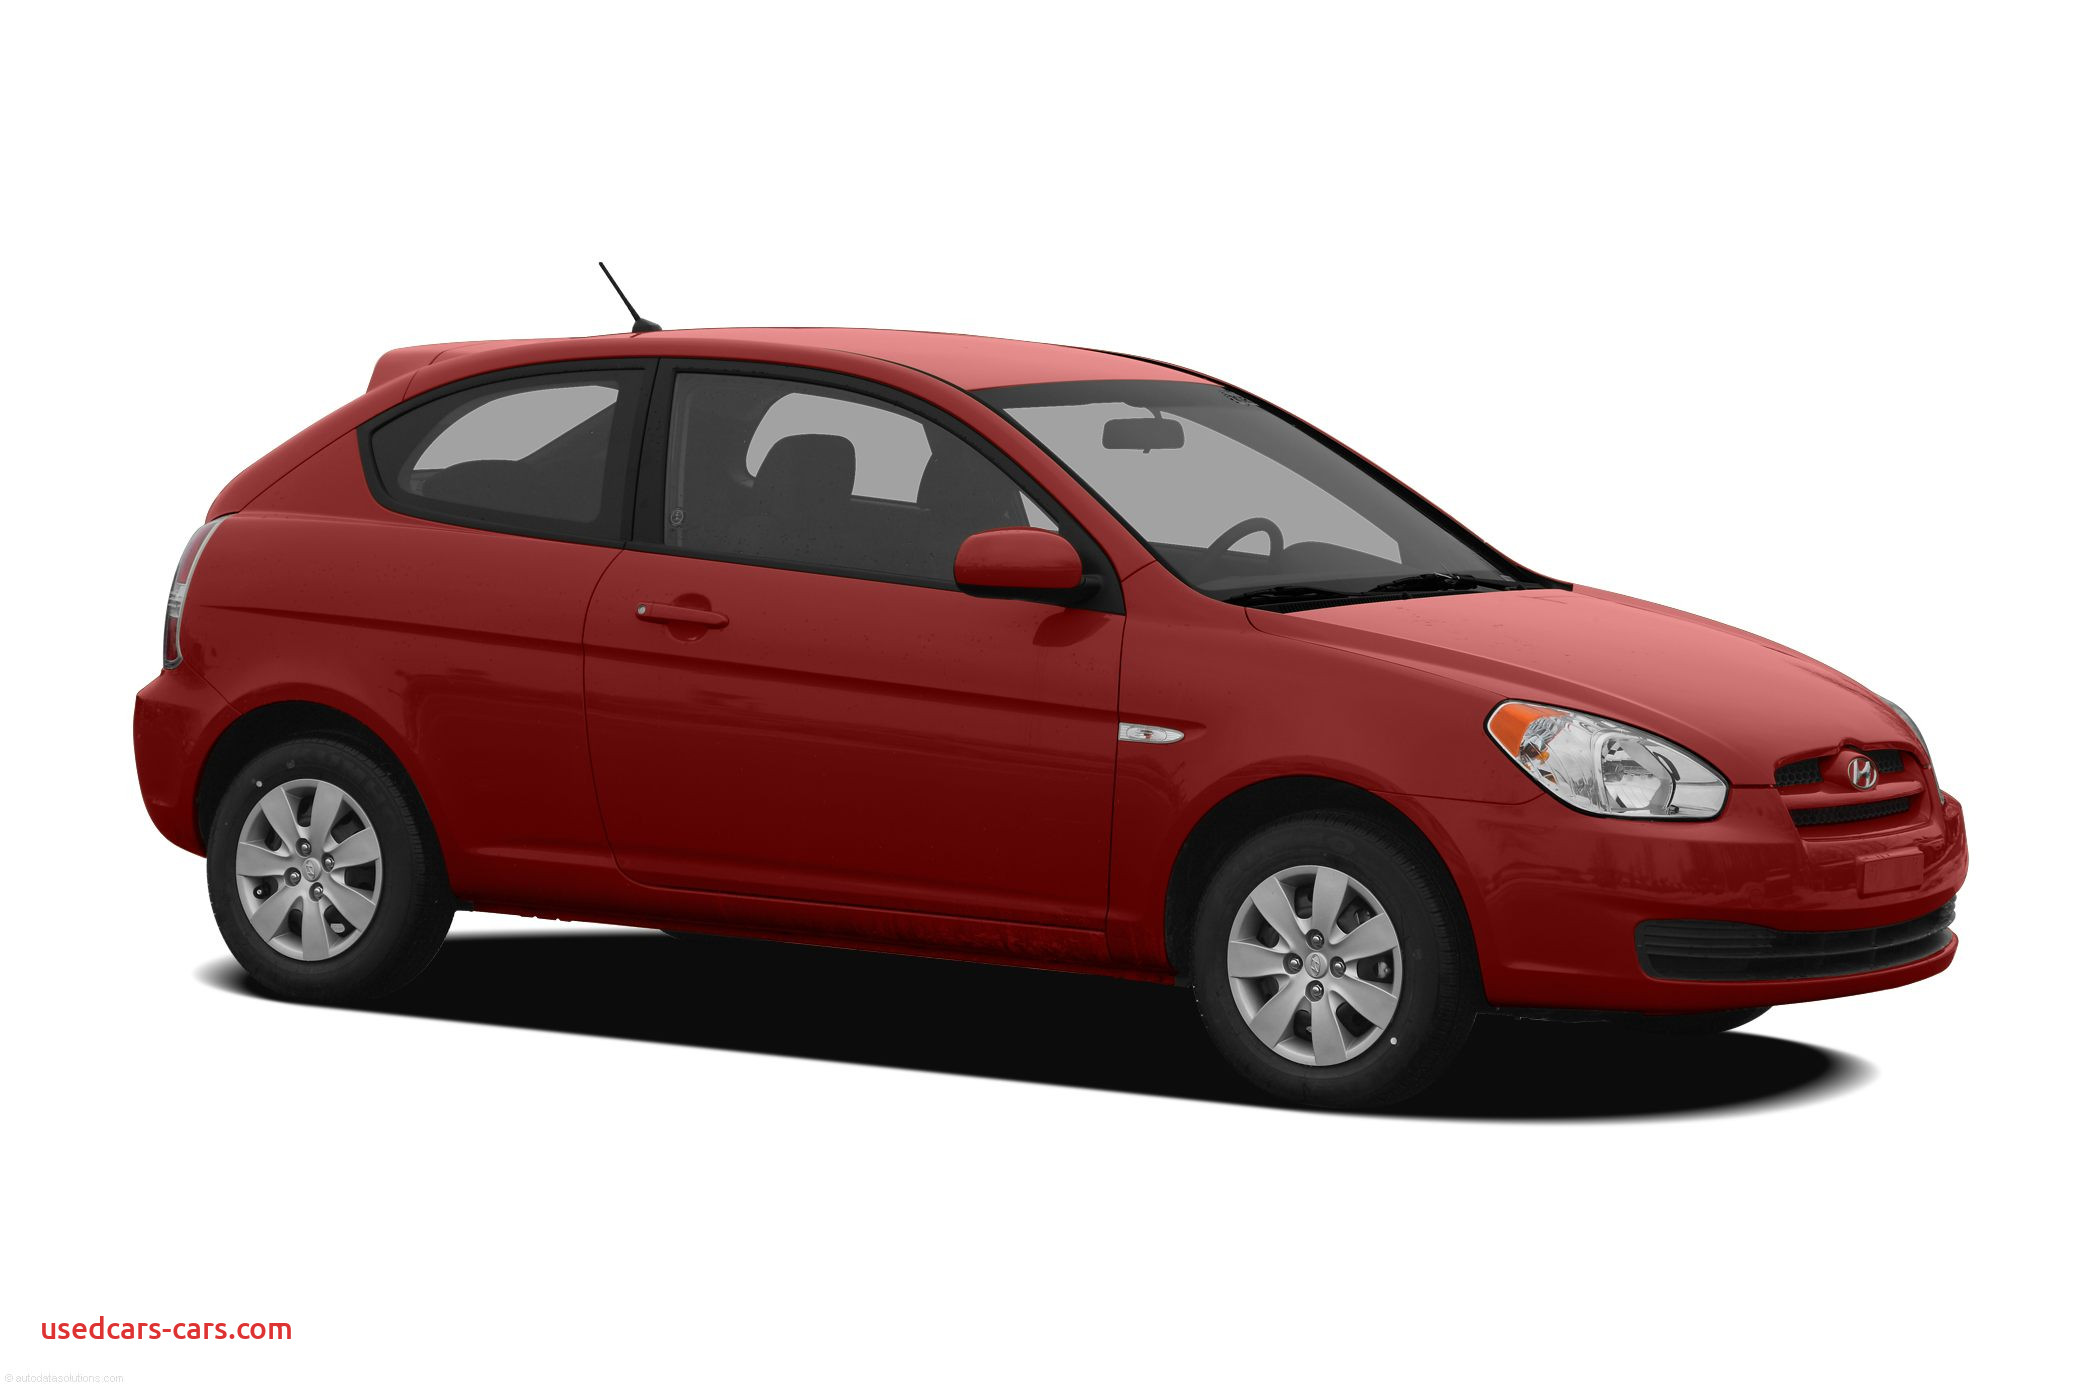 2011 Hyundai Accent Lovely 2011 Hyundai Accent Price Photos Reviews Features